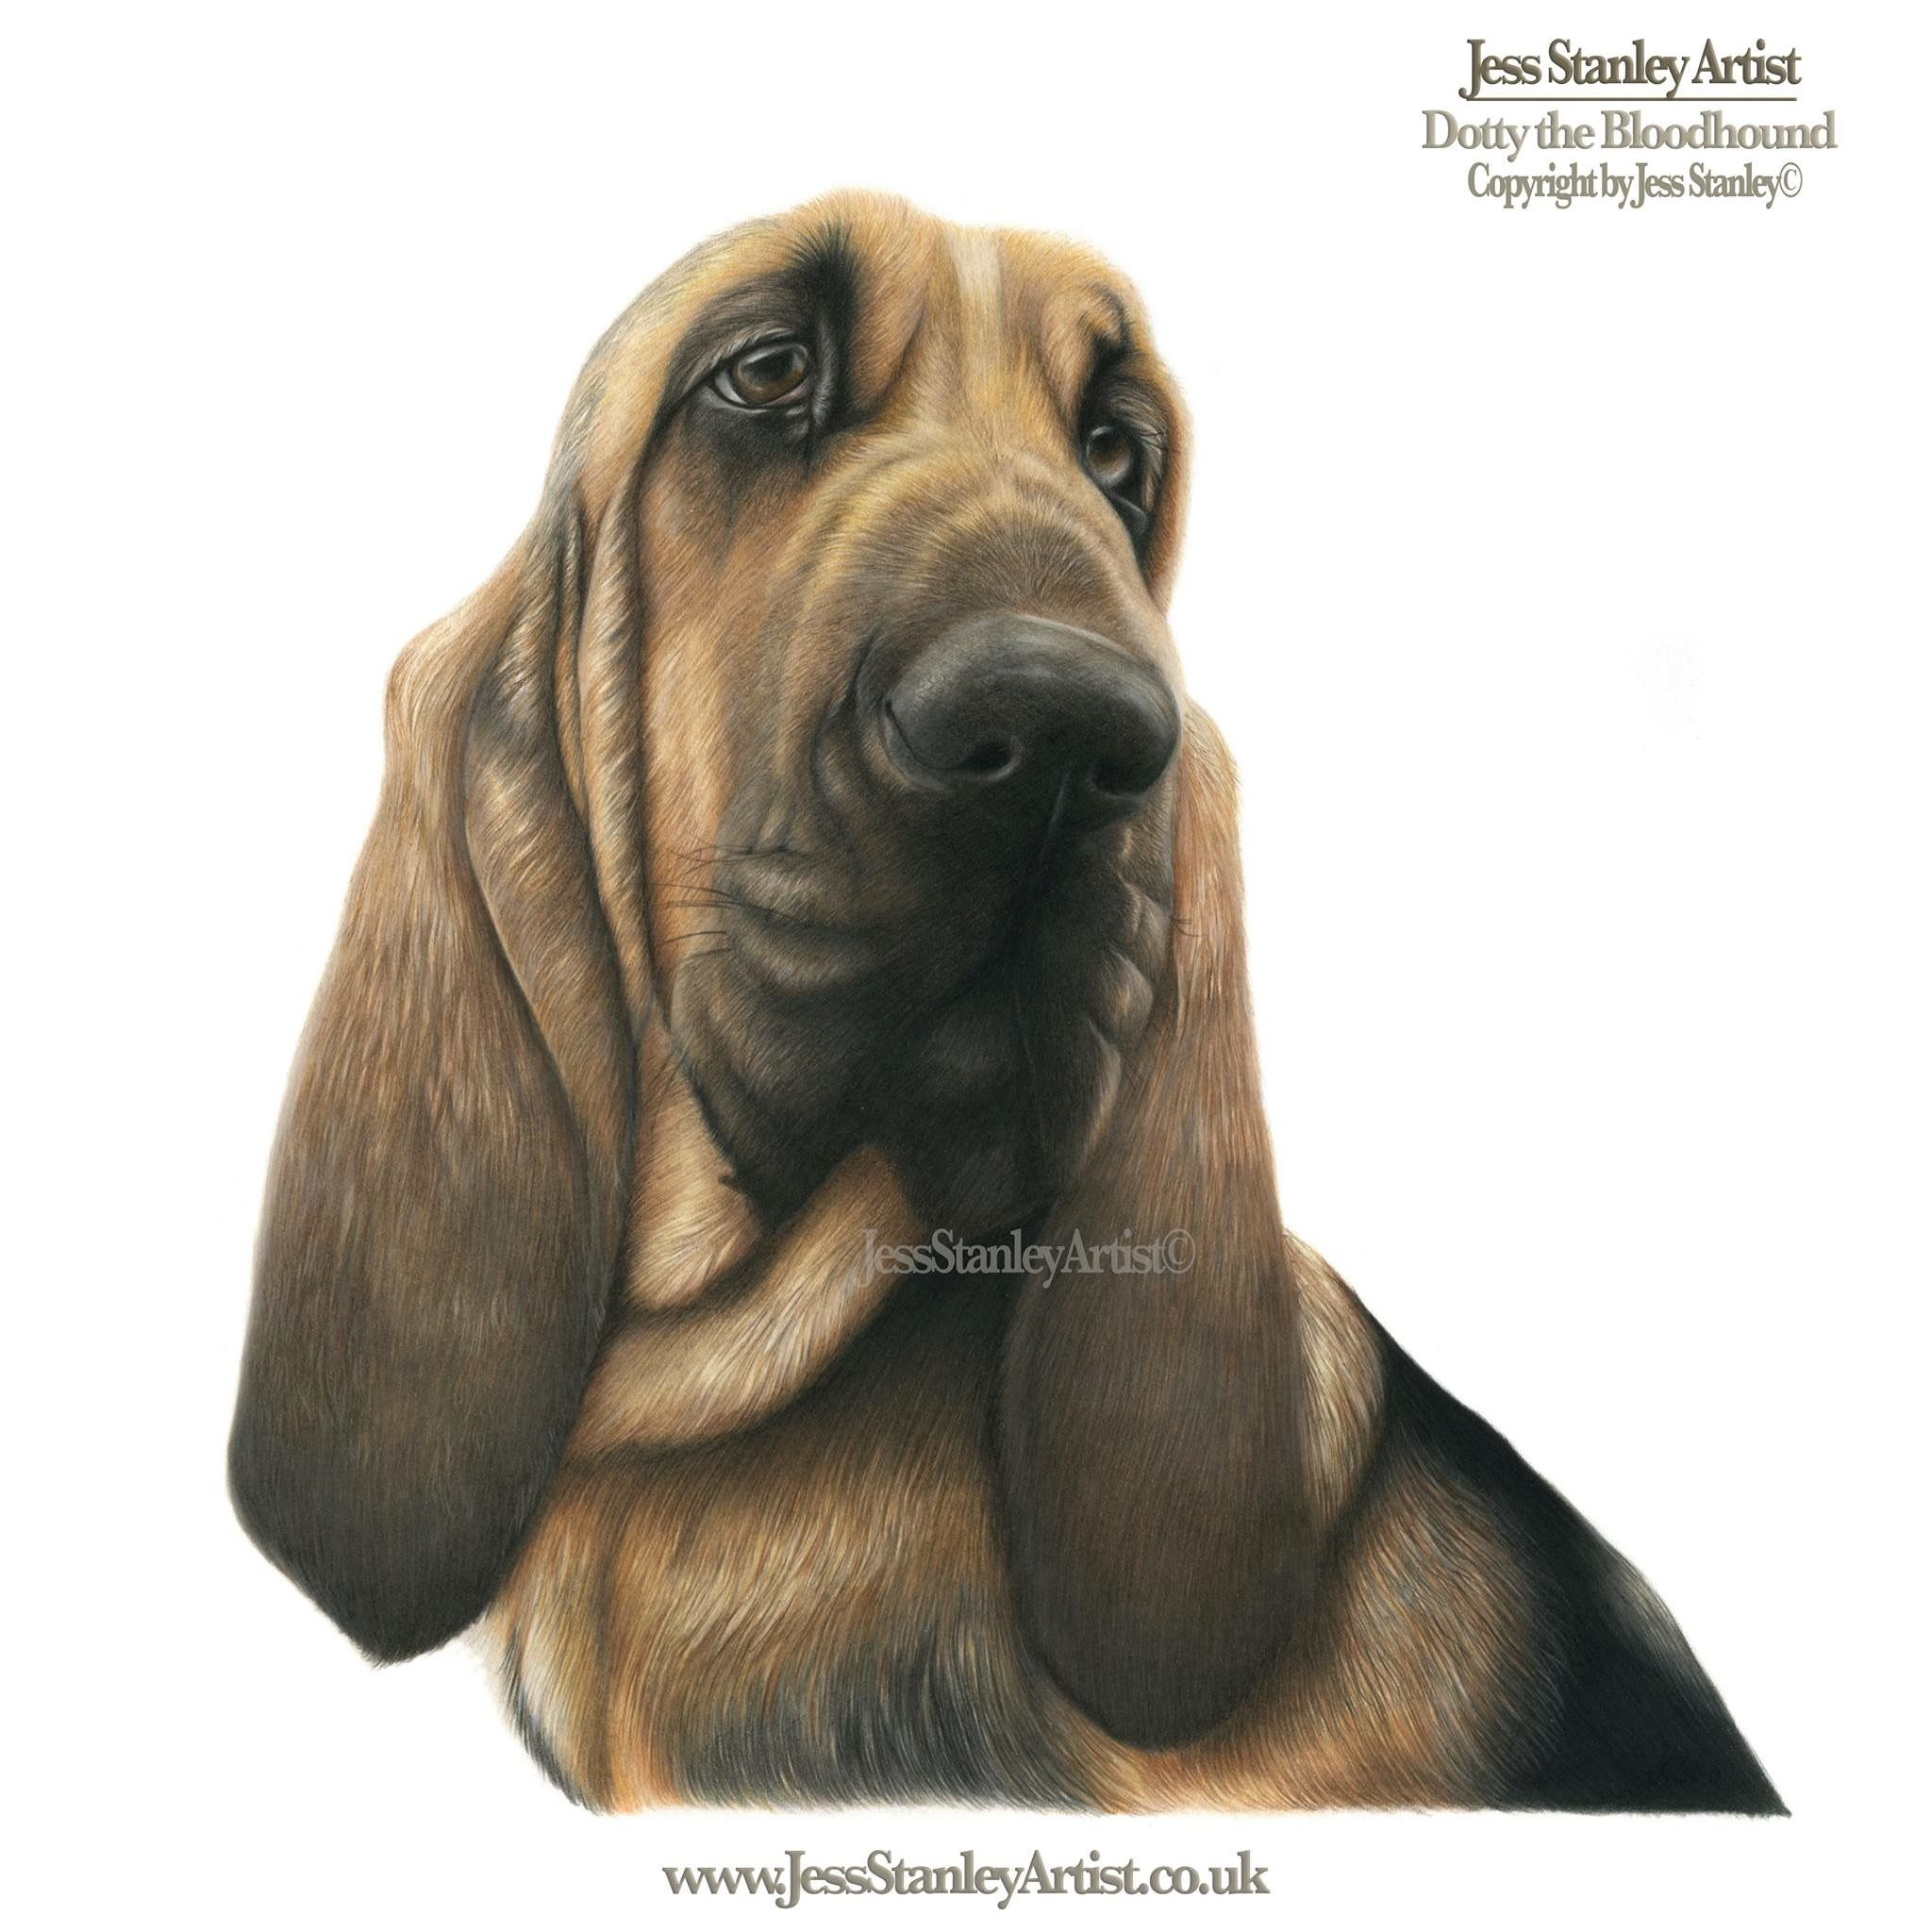 Dotty the bloodhound by jess stanley artist in coloured